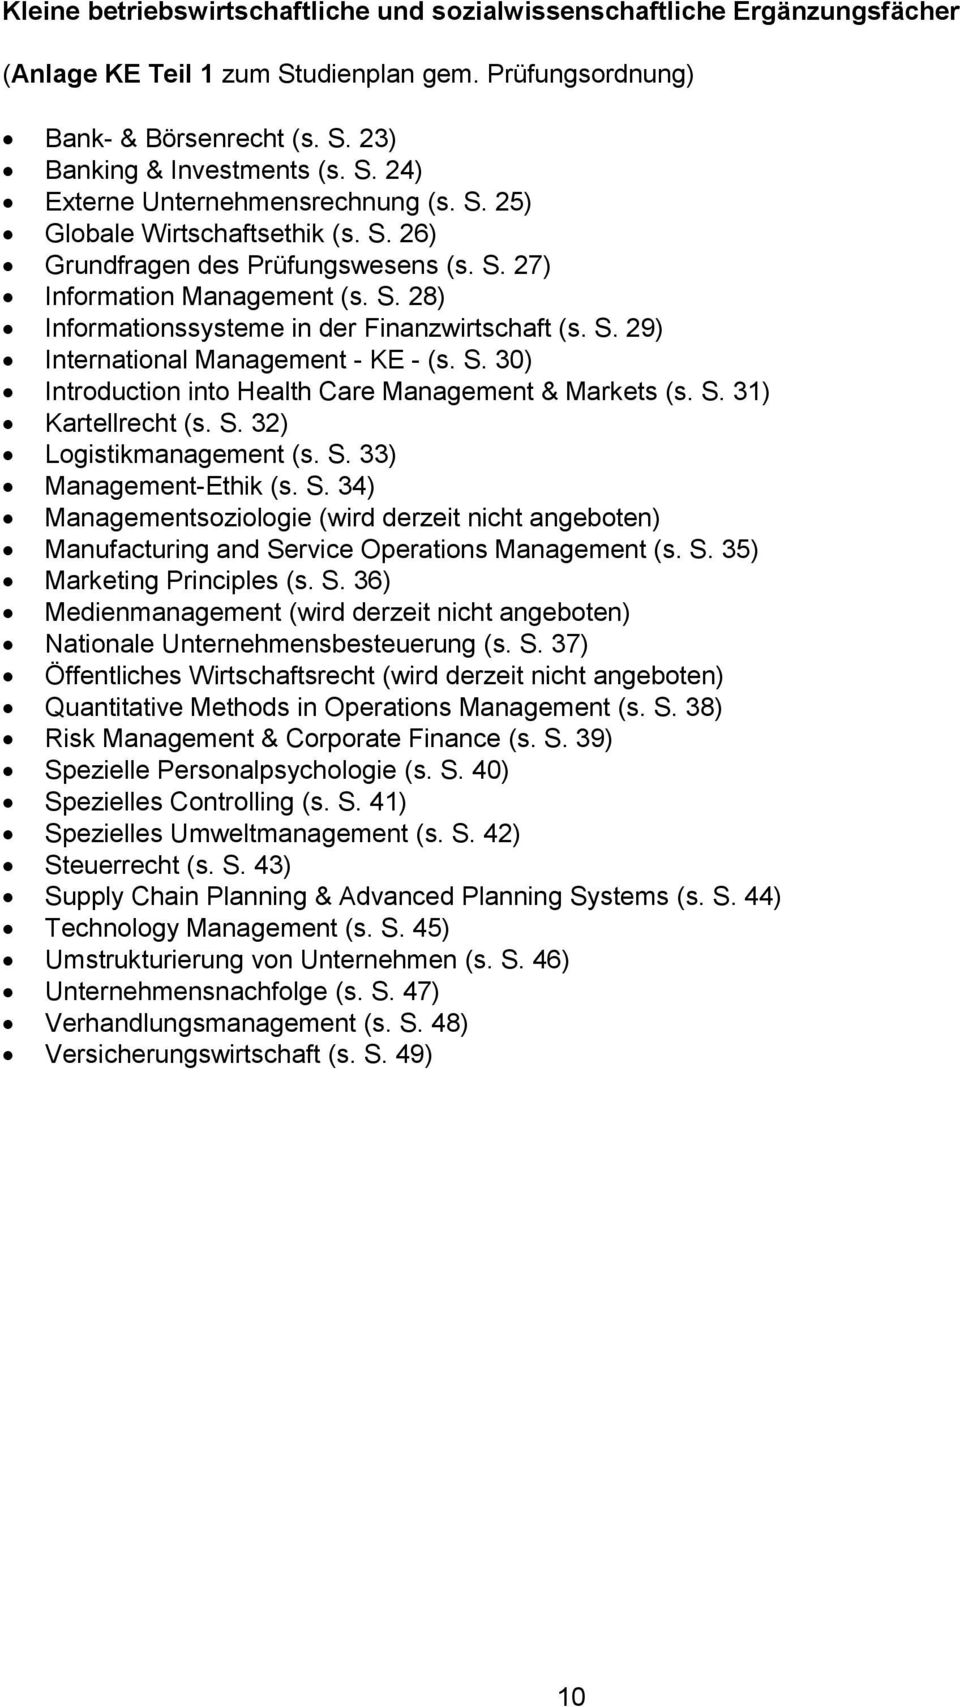 S. 30) Introduction into Health Care Management & Markets (s. S. 31) artellrecht (s. S. 32) Logistikmanagement (s. S. 33) Management-Ethik (s. S. 34) Managementsoziologie (wird derzeit nicht angeboten) Manufacturing and Service Operations Management (s.